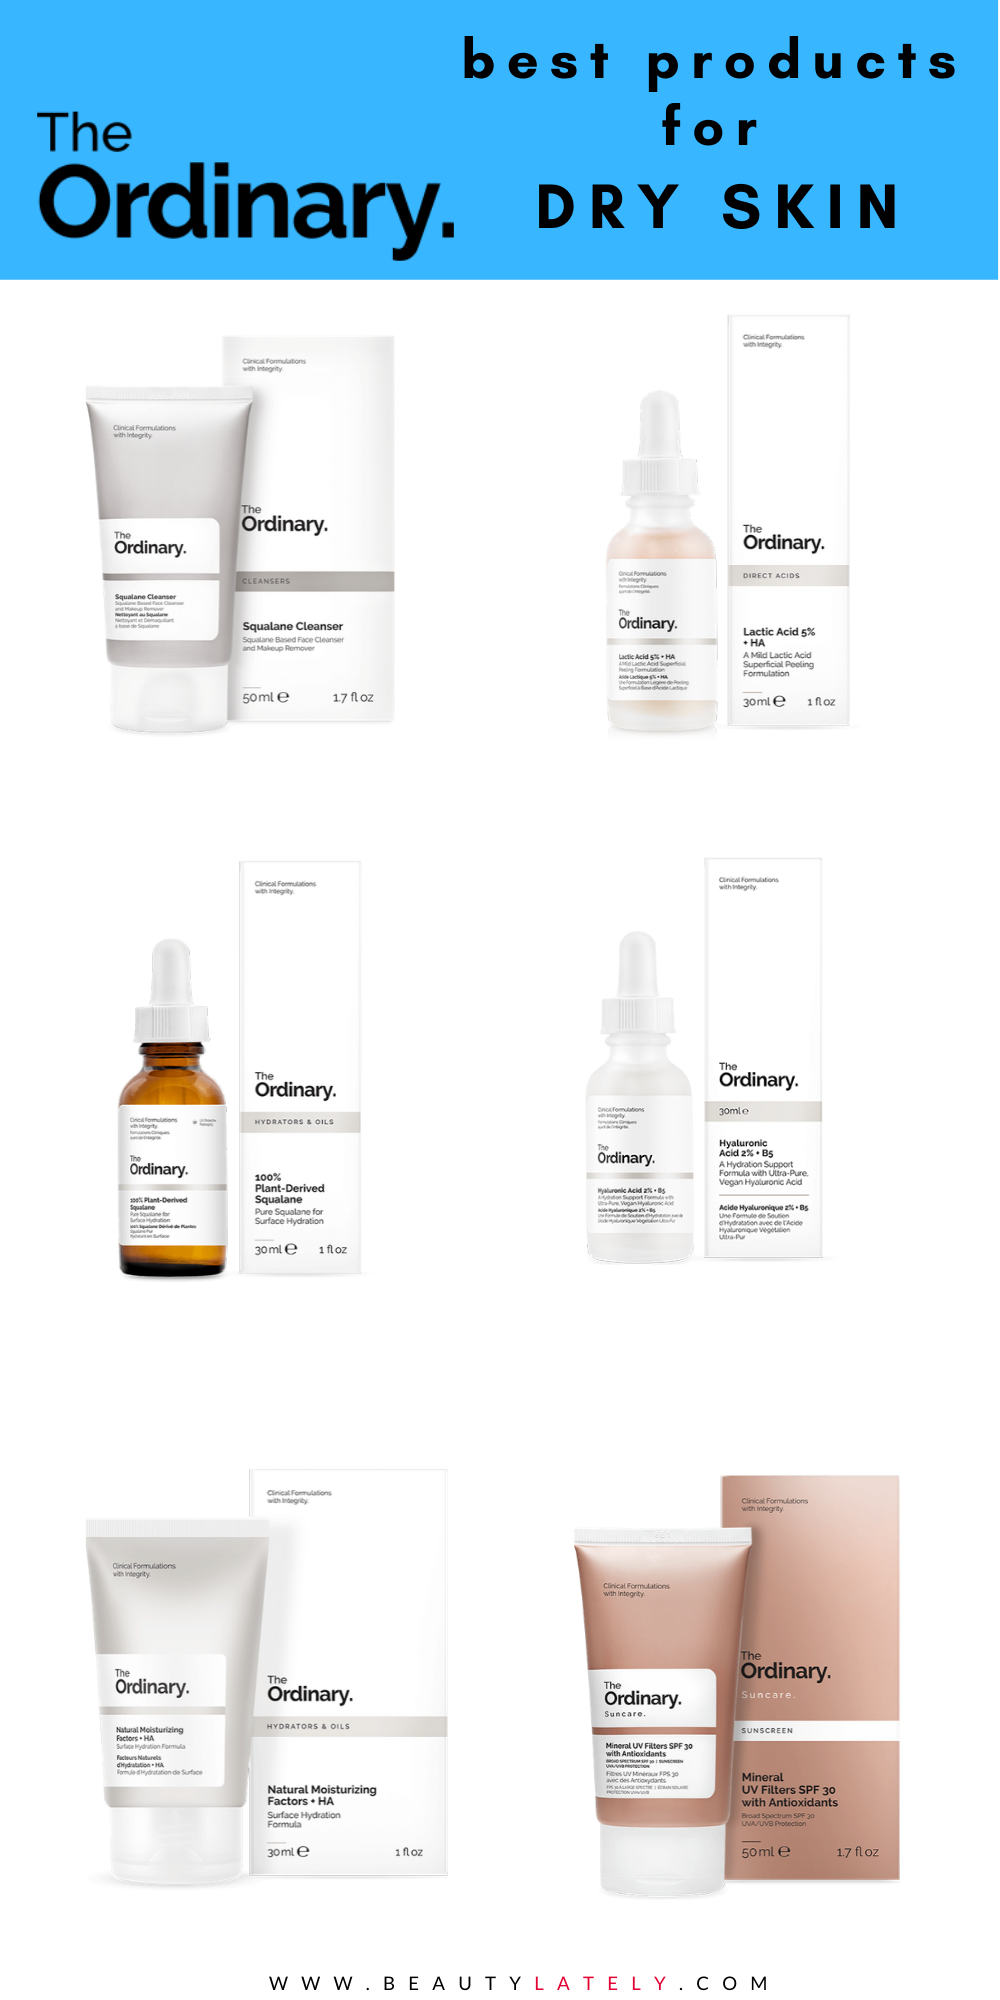 Is The Ordinary Hyaluronic Acid Good For Dry Skin